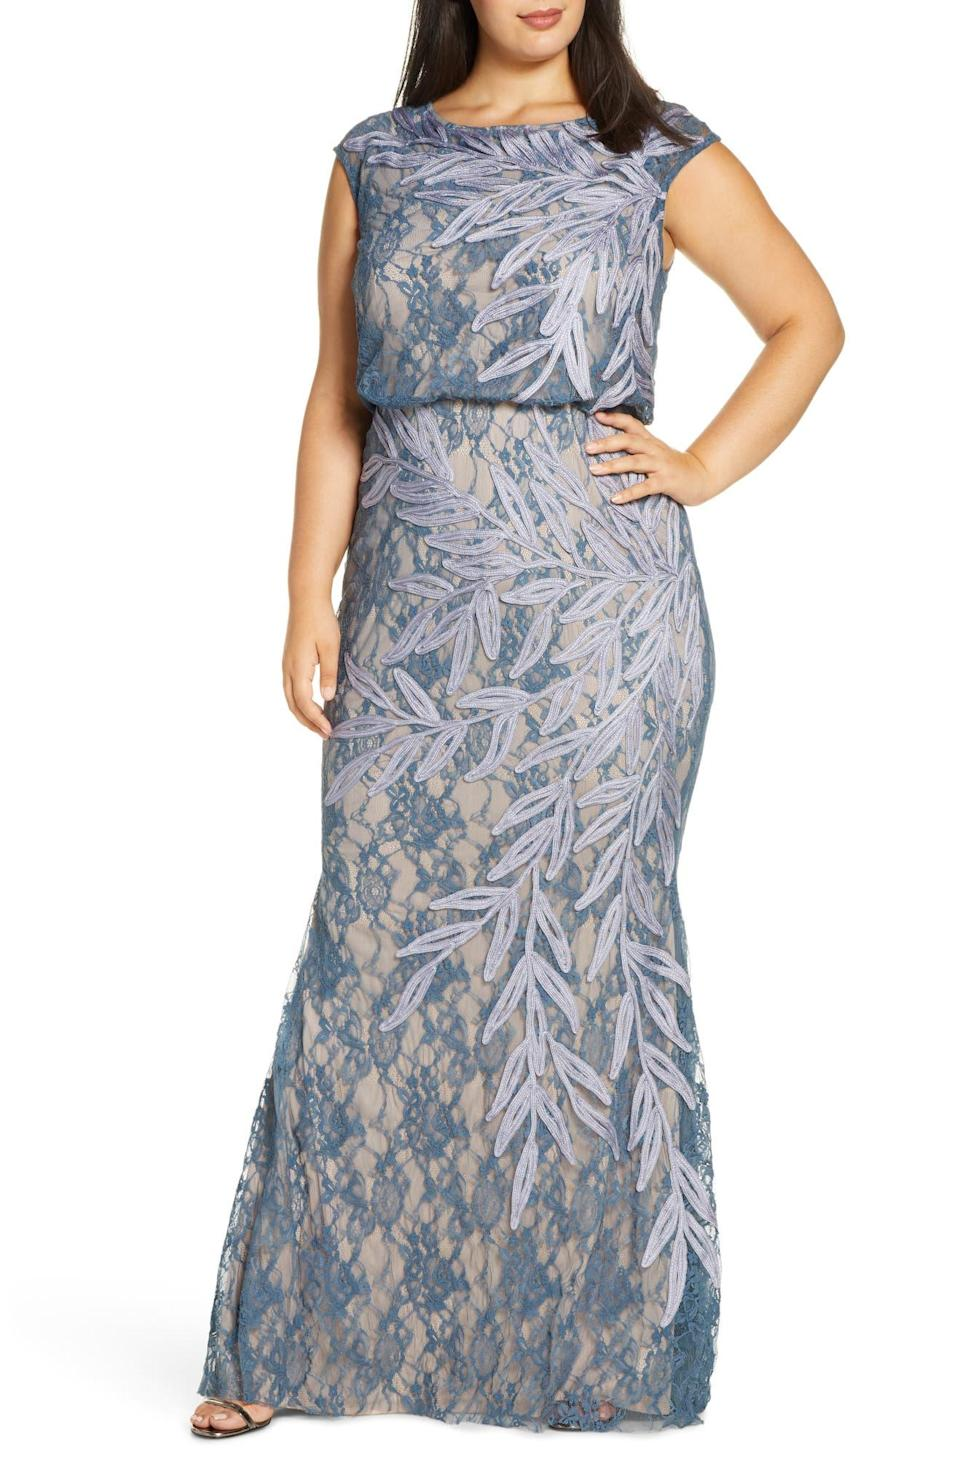 """<h2>JS Collections Soutache Lace Blouson Gown In Lilac Gray</h2><br>This painterly floor-length gown is layered with sophisticated hues, including a nude slip, a contrasting blue lace overlay, and a periwinkle soutache ribbon that unfurls organically across the silhouette.<br><br><em>Shop JS Collections at <strong><a href=""""https://www.nordstrom.com/brands/js-collections--1268"""" rel=""""nofollow noopener"""" target=""""_blank"""" data-ylk=""""slk:Nordstrom"""" class=""""link rapid-noclick-resp"""">Nordstrom</a></strong></em><br><br><strong>JS Collections</strong> Soutache Lace Blouson Gown, $, available at <a href=""""https://go.skimresources.com/?id=30283X879131&url=https%3A%2F%2Fwww.nordstrom.com%2Fs%2Fjs-collections-soutache-lace-blouson-gown-plus-size%2F5530536"""" rel=""""nofollow noopener"""" target=""""_blank"""" data-ylk=""""slk:Nordstrom"""" class=""""link rapid-noclick-resp"""">Nordstrom</a>"""